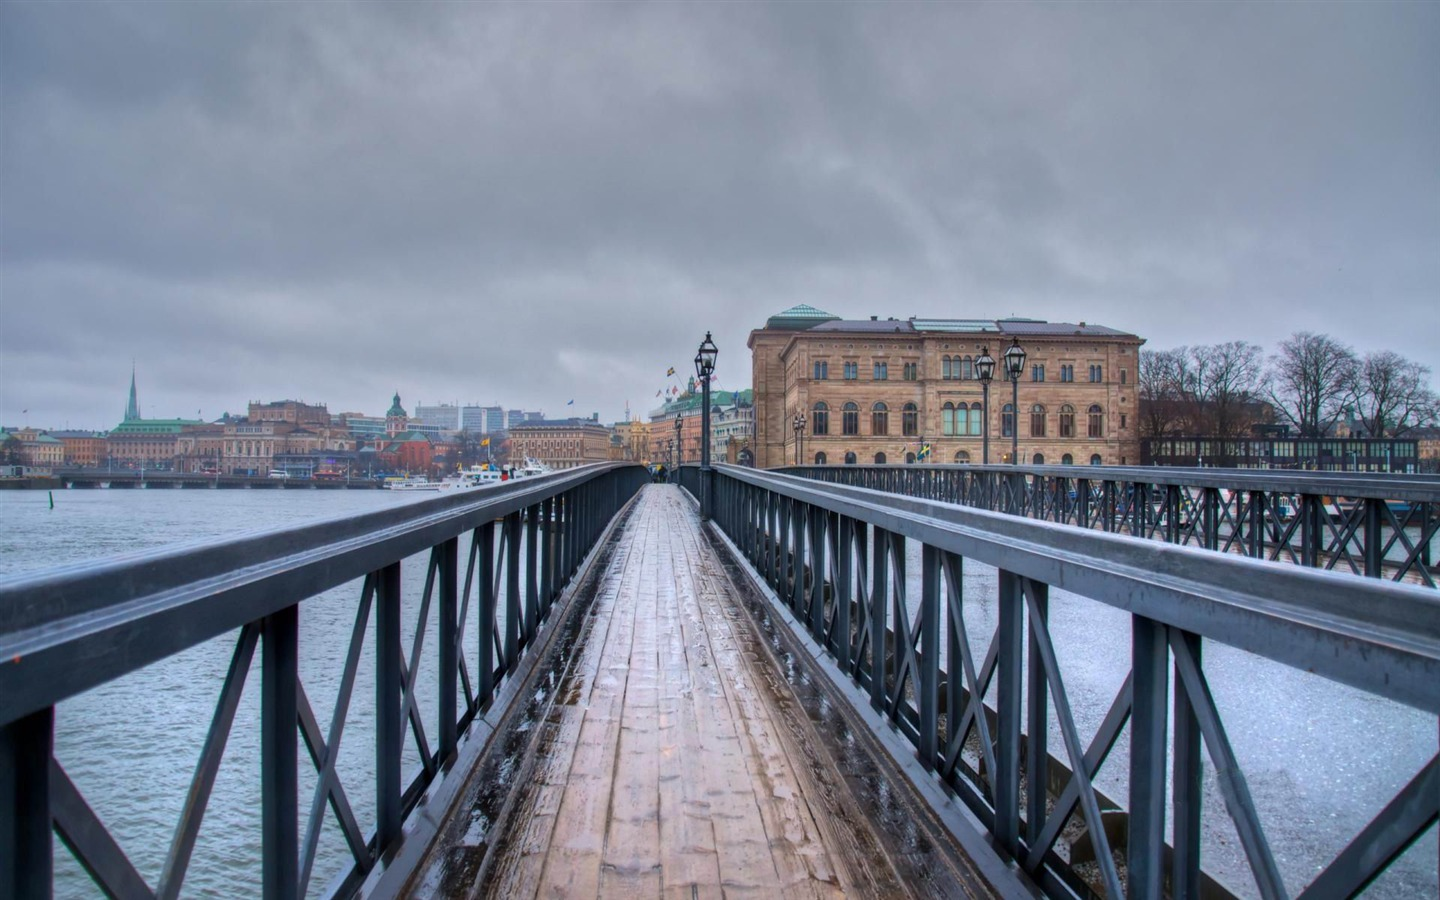 Urban_Bridges-Stockholm_Sweden_landscape_photography_HD_wallpaper_1440x900